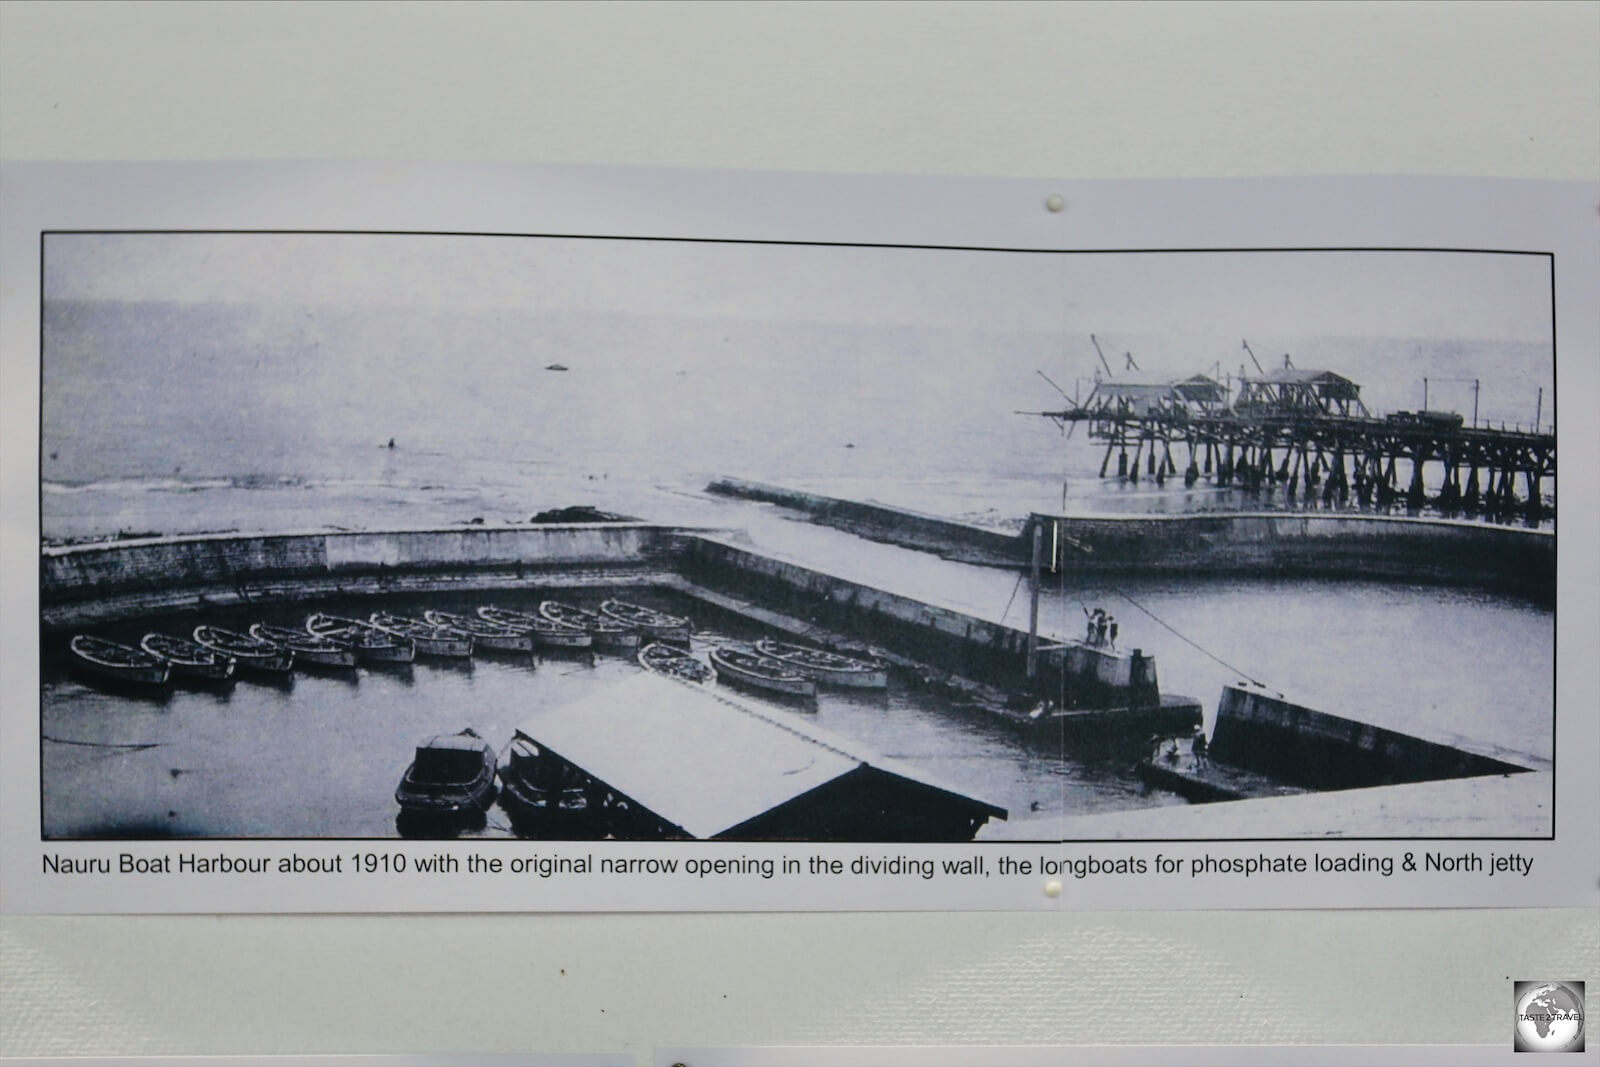 A photo at the Nauru Museum, from 1910, shows the small row boats which were originally used to manually load phosphate onto ships which had to anchor beyond the shallow reef.